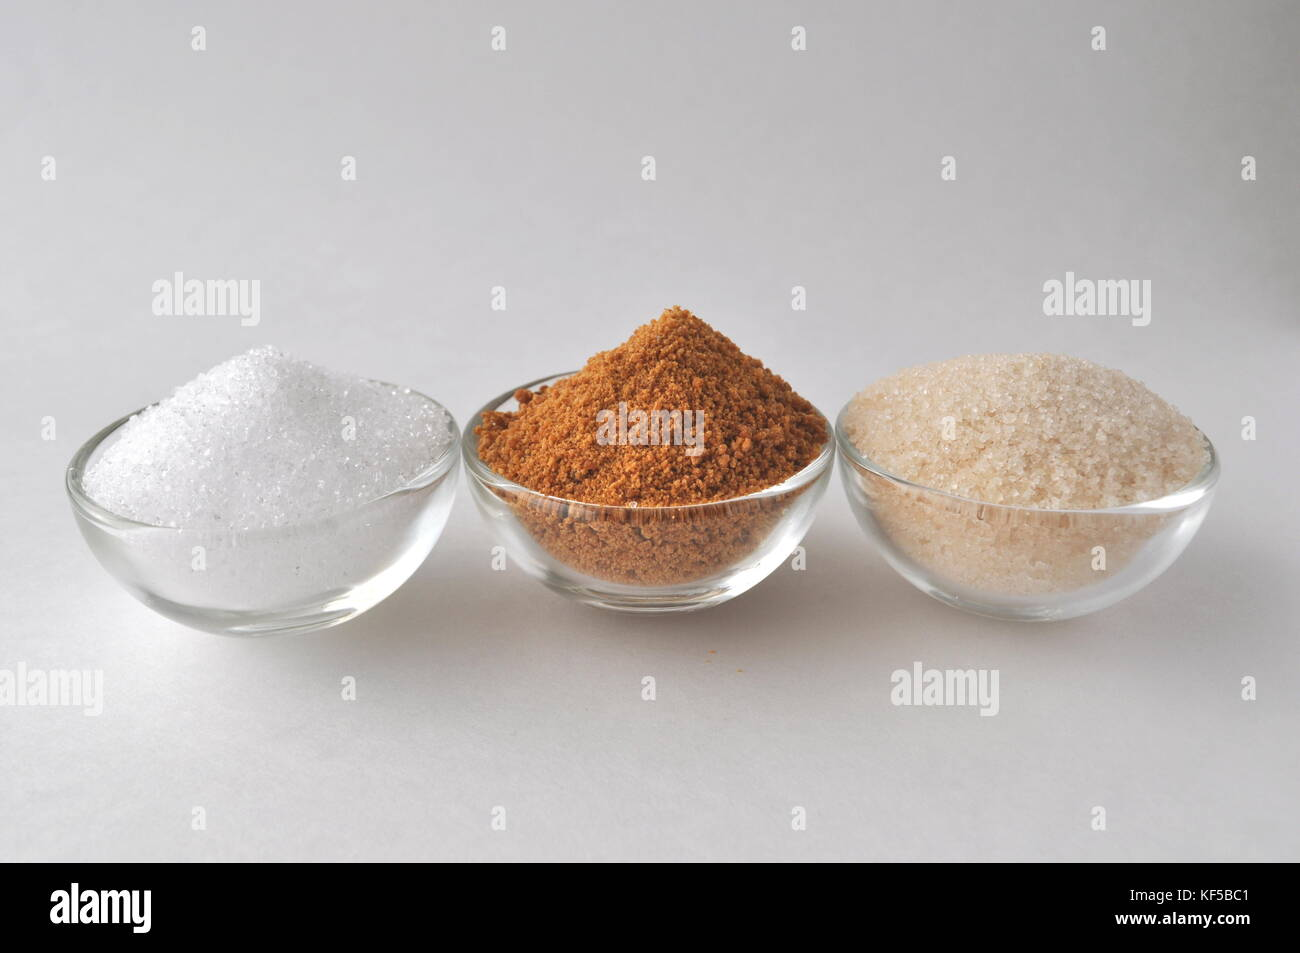 Alternative sweeteners and sugar substitutes - coconut bud sugar, xylitol, cane sugar, maple syrup and honey, isolated - Stock Image